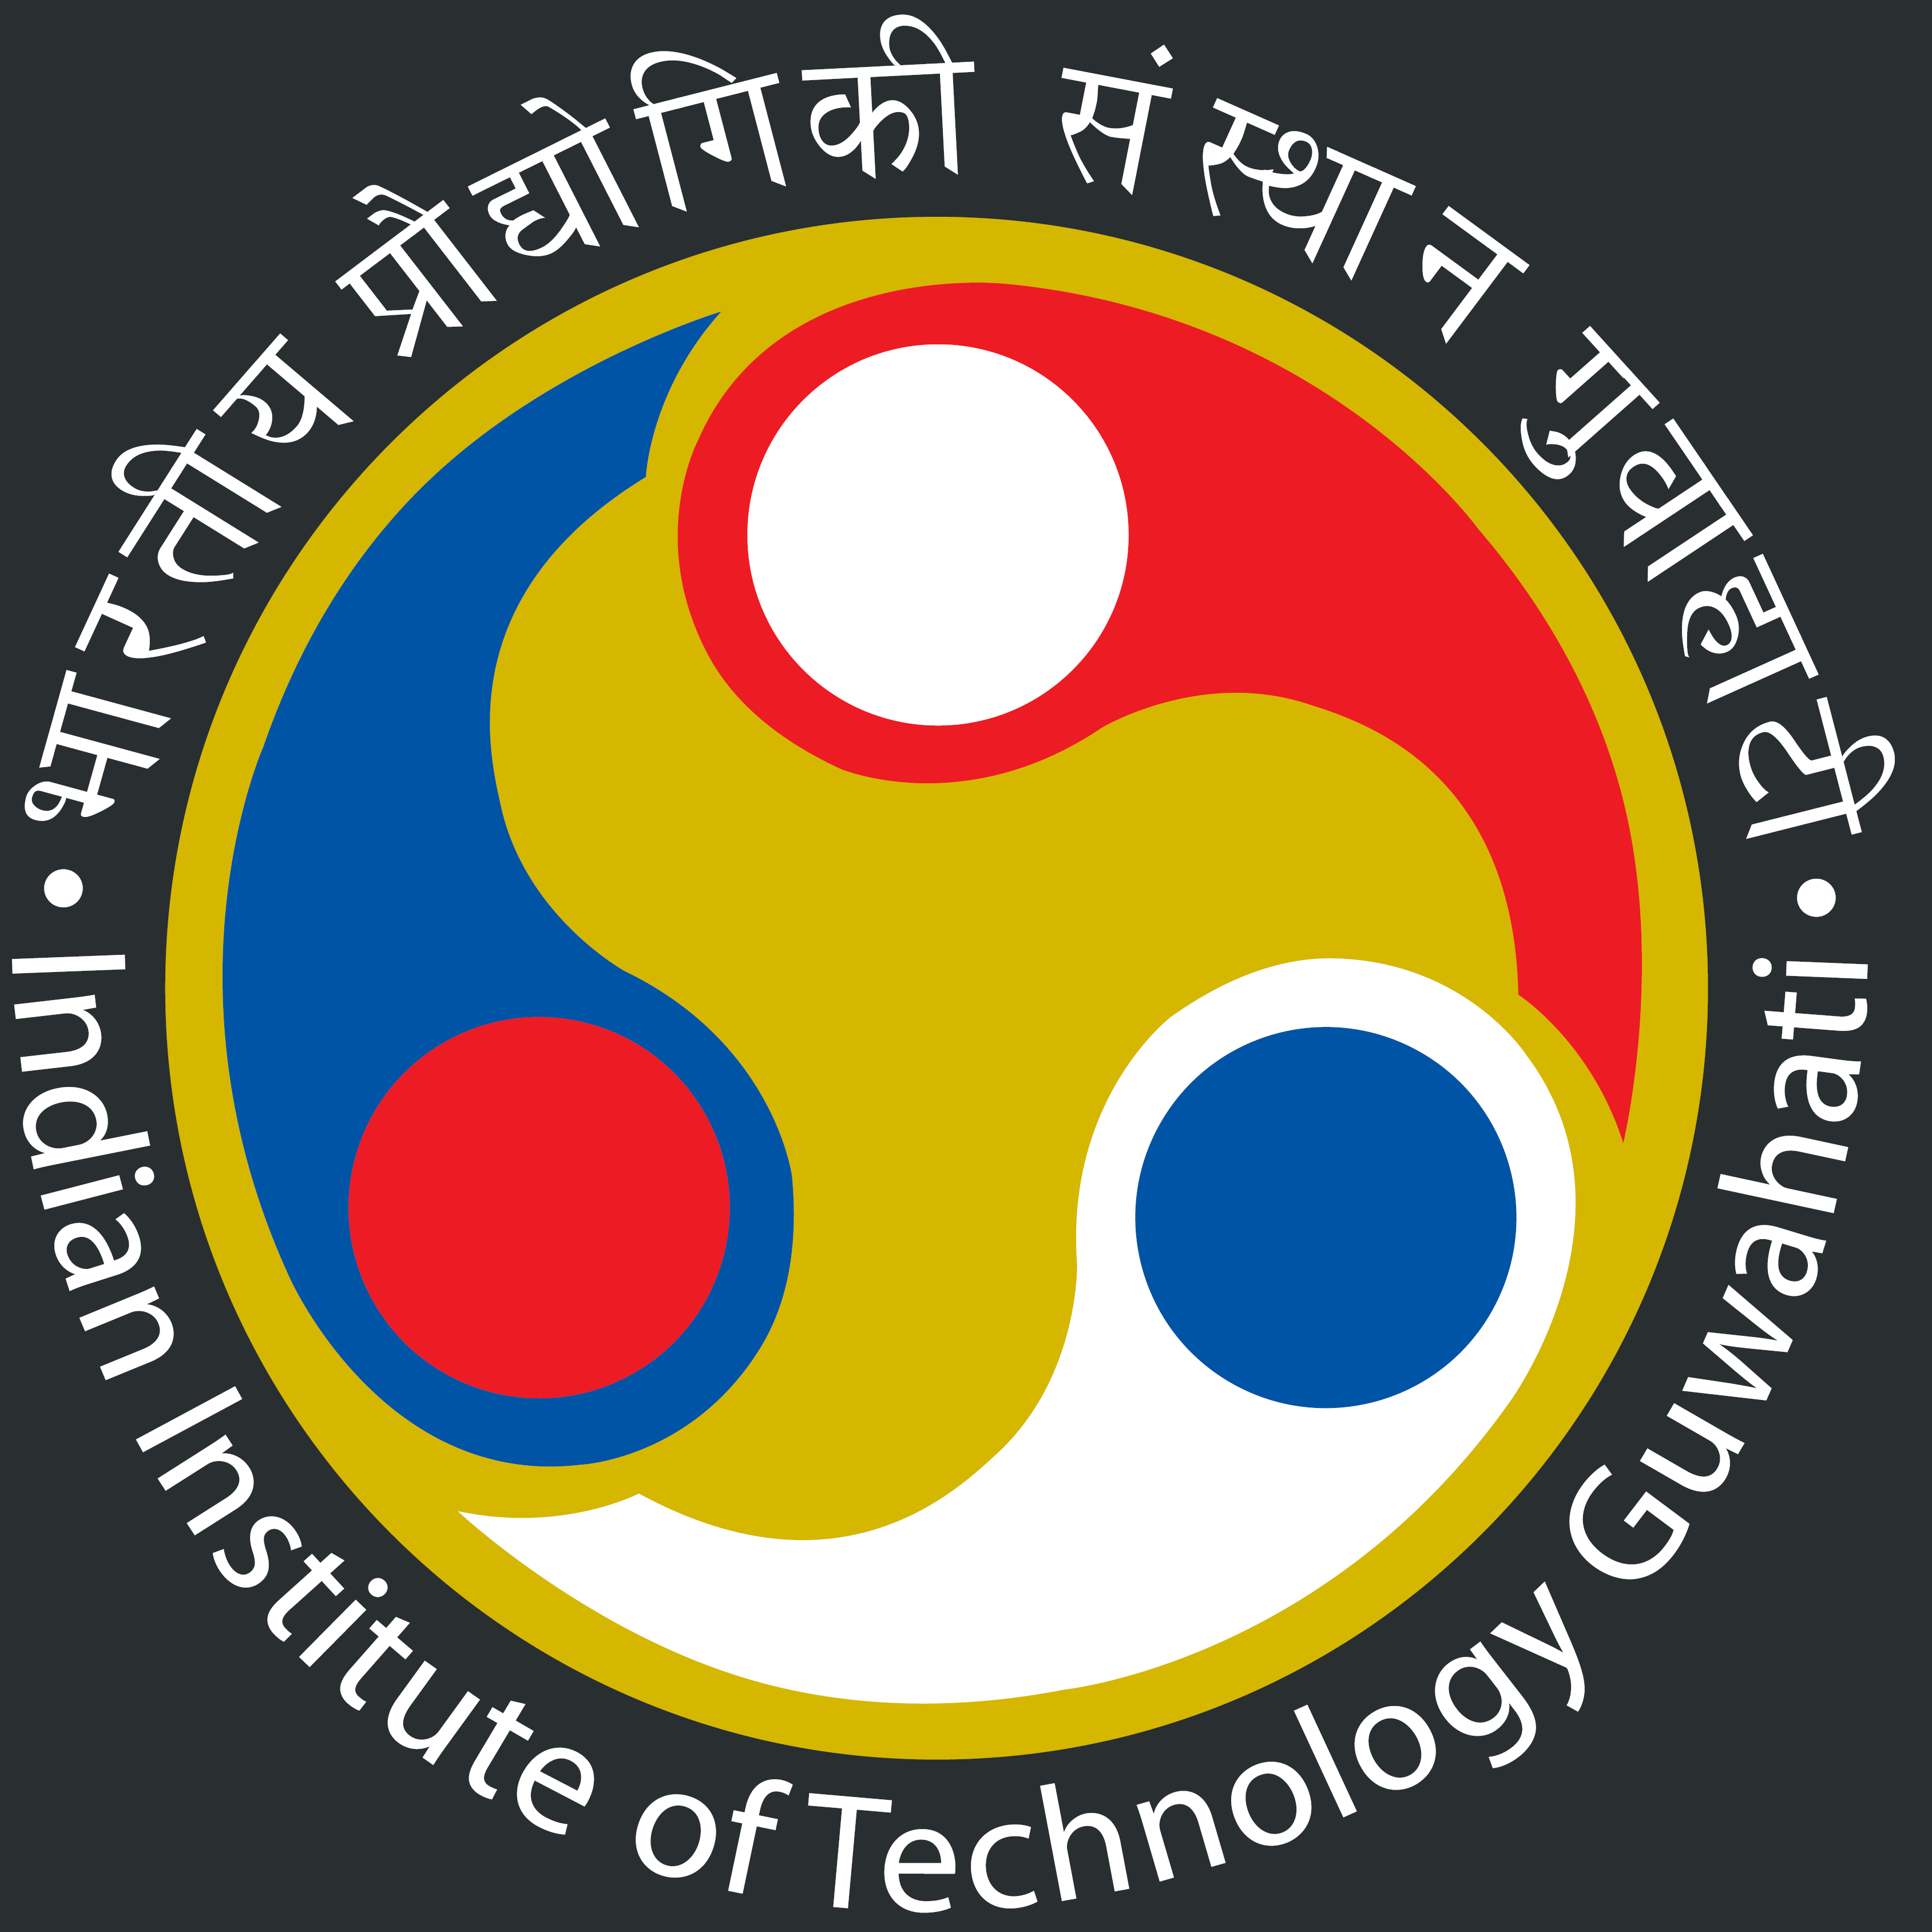 IIT Guwahati Notification 2019 – Openings For Various Research Fellow Posts